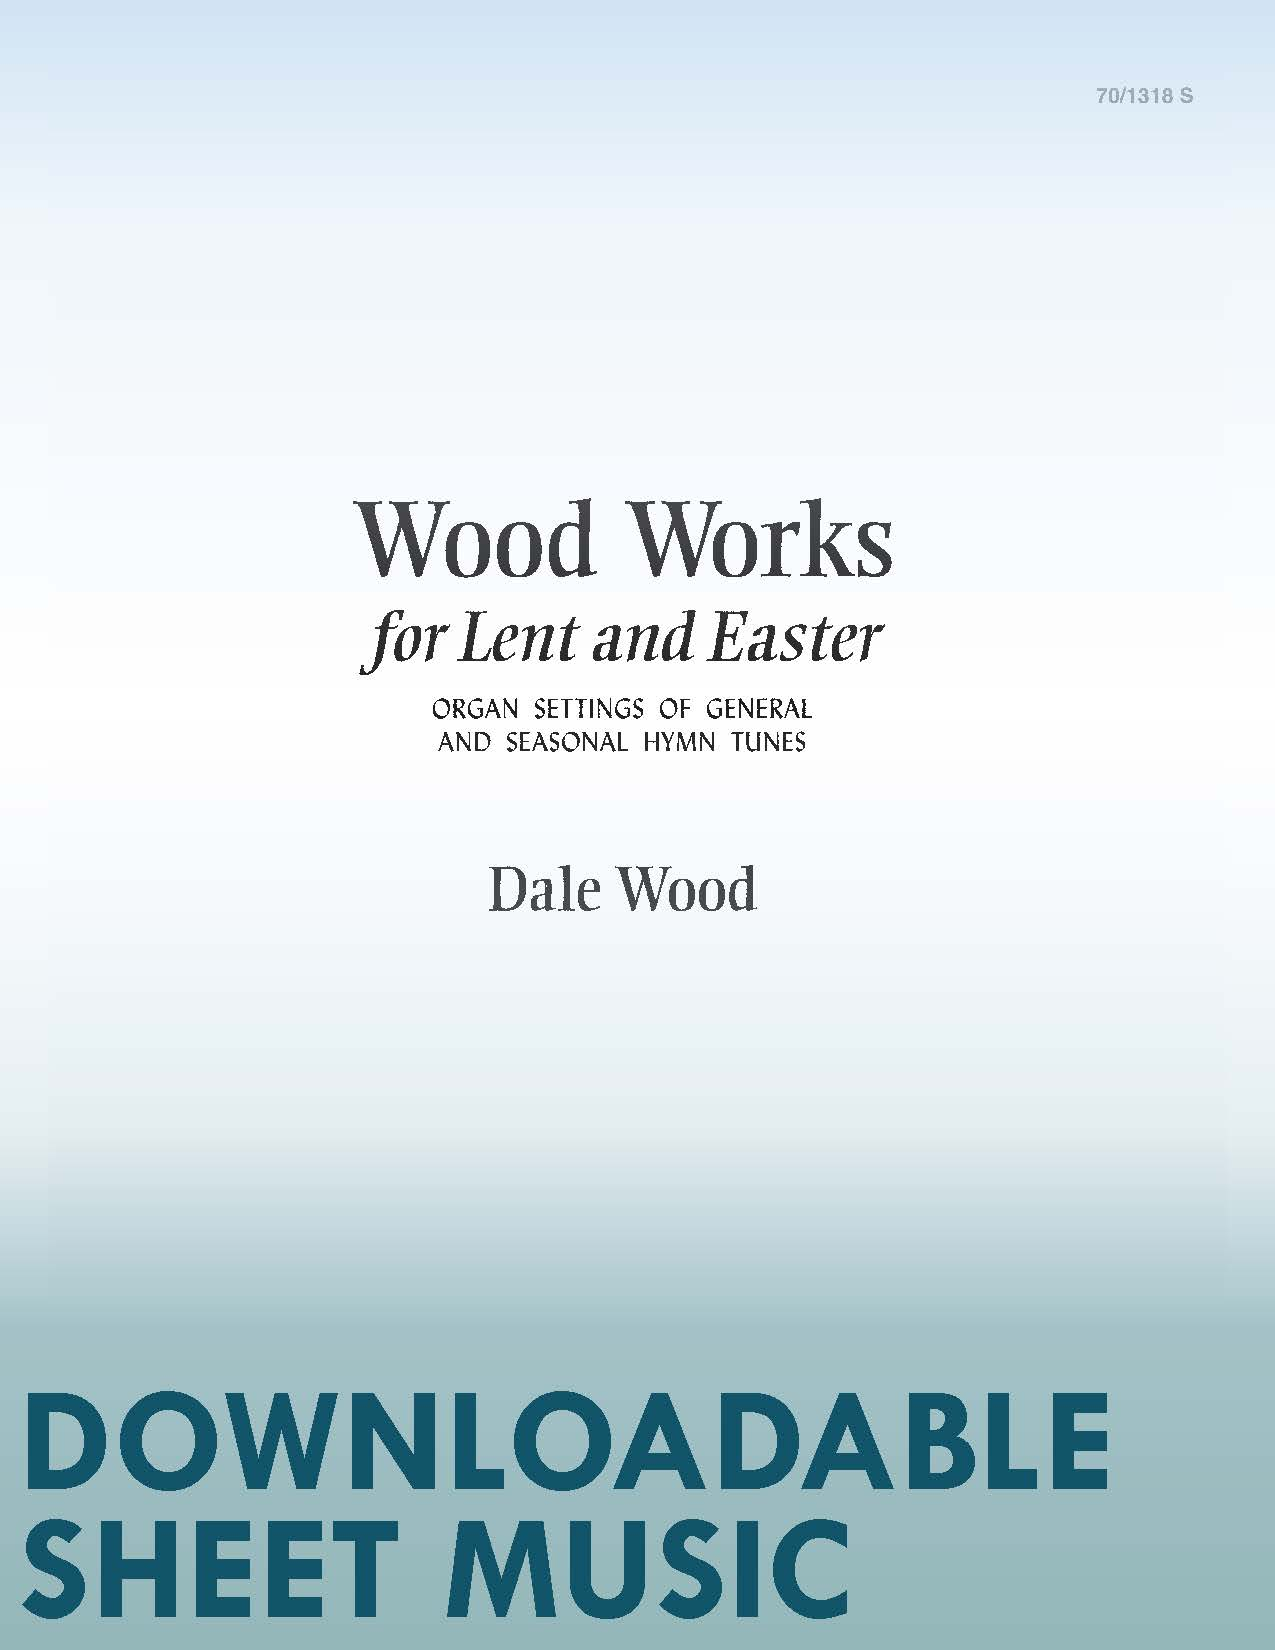 Wood Works for Lent and Easter - Digital Download